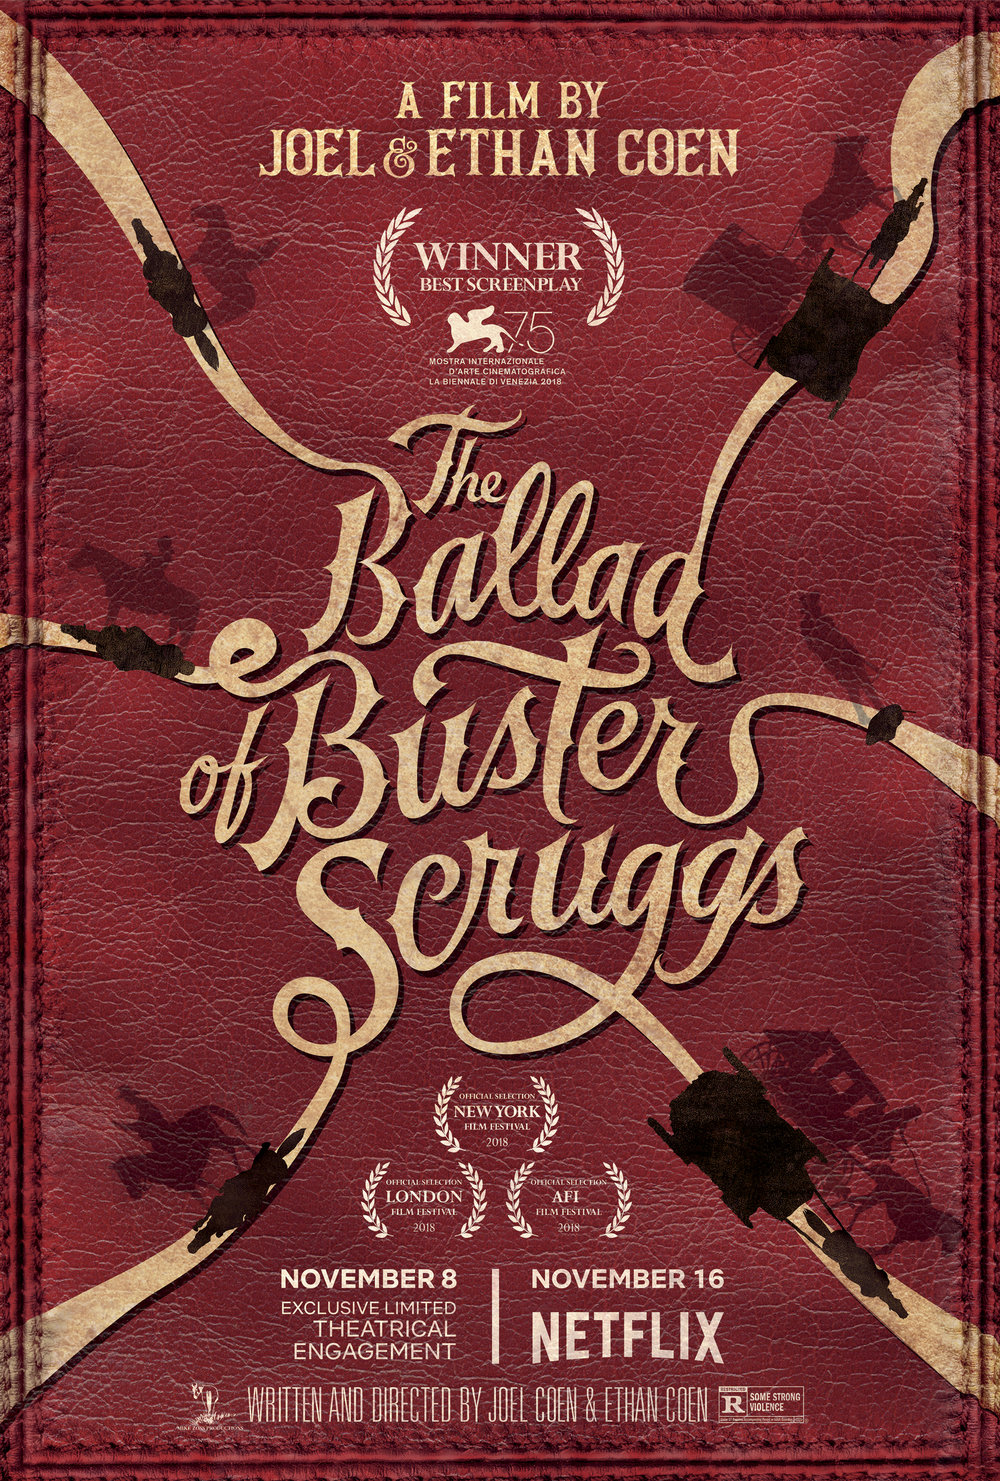 The Ballad of Buster Scrug